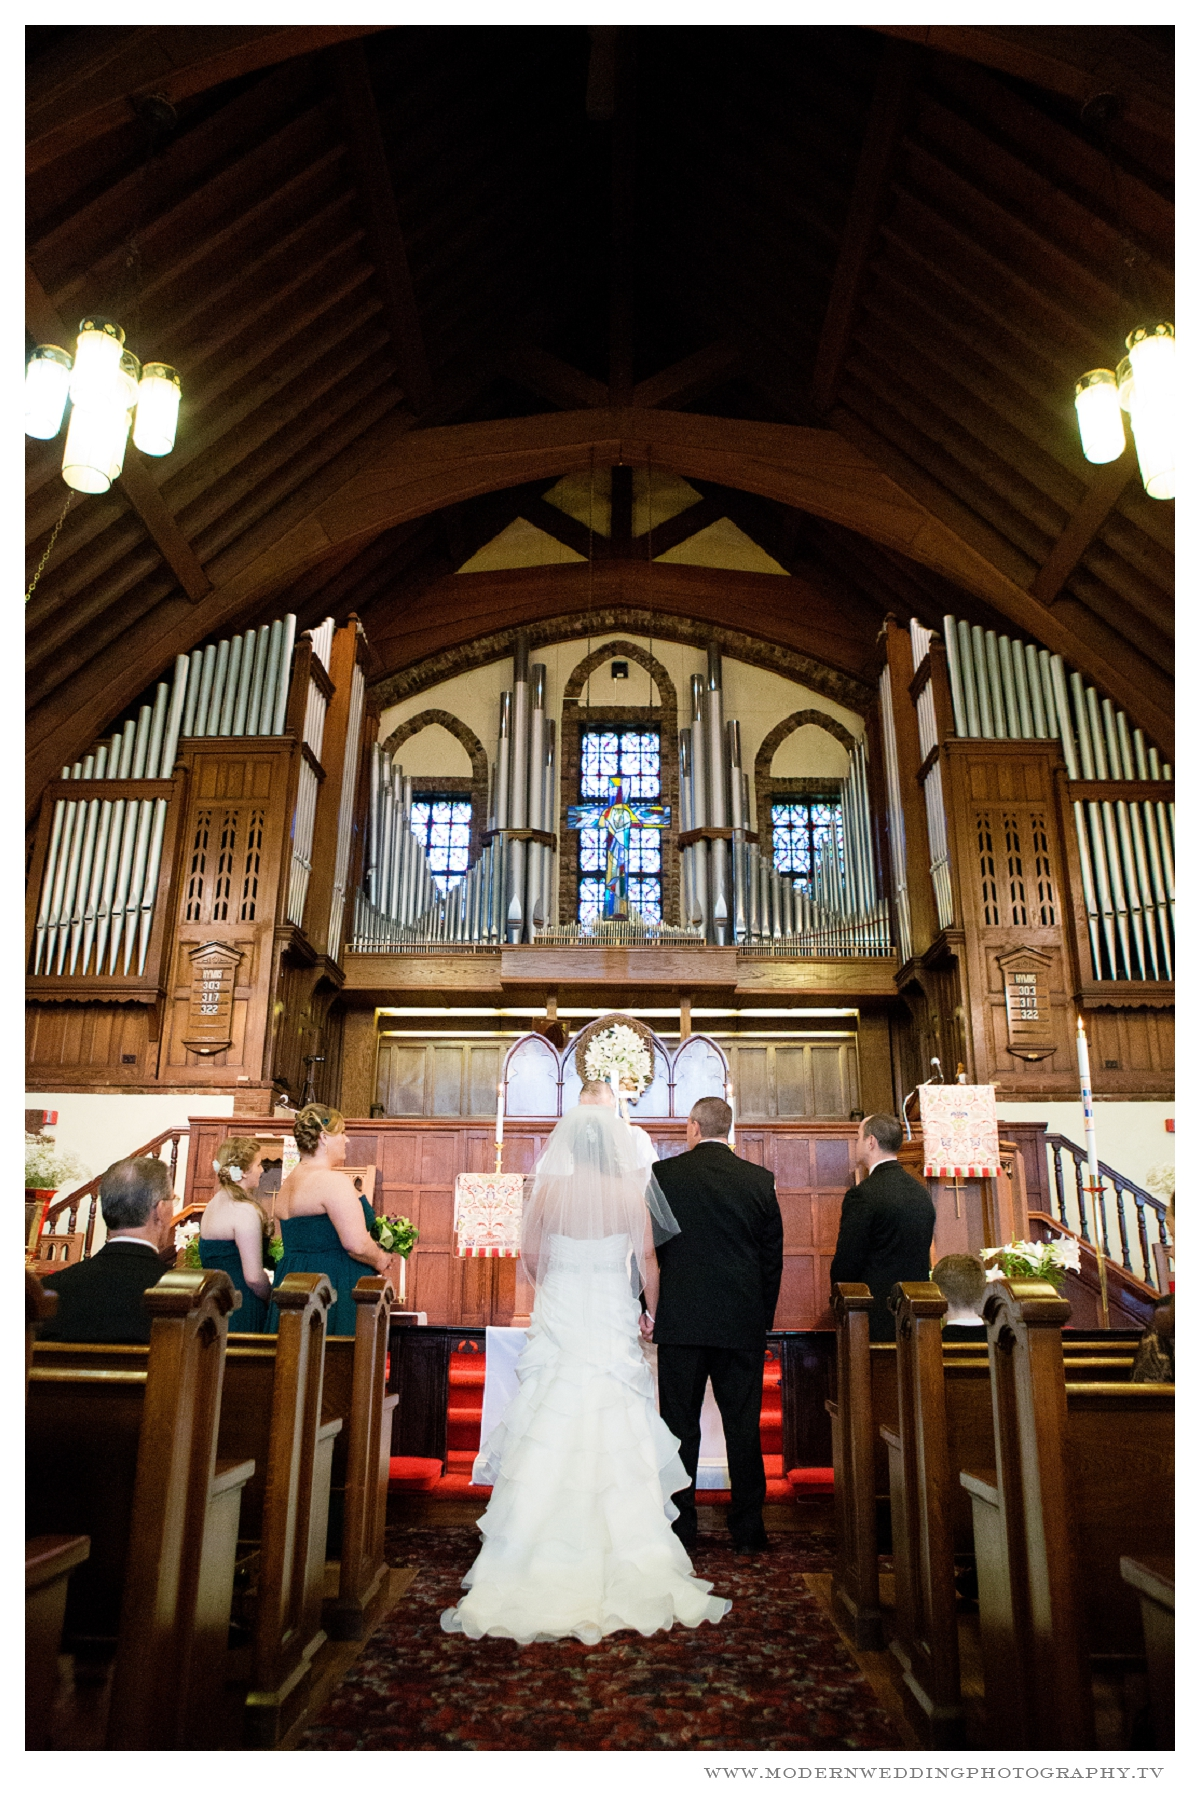 Saint James United Methodist Church Lynbrook- Modern wedding Photography 13 .JPG